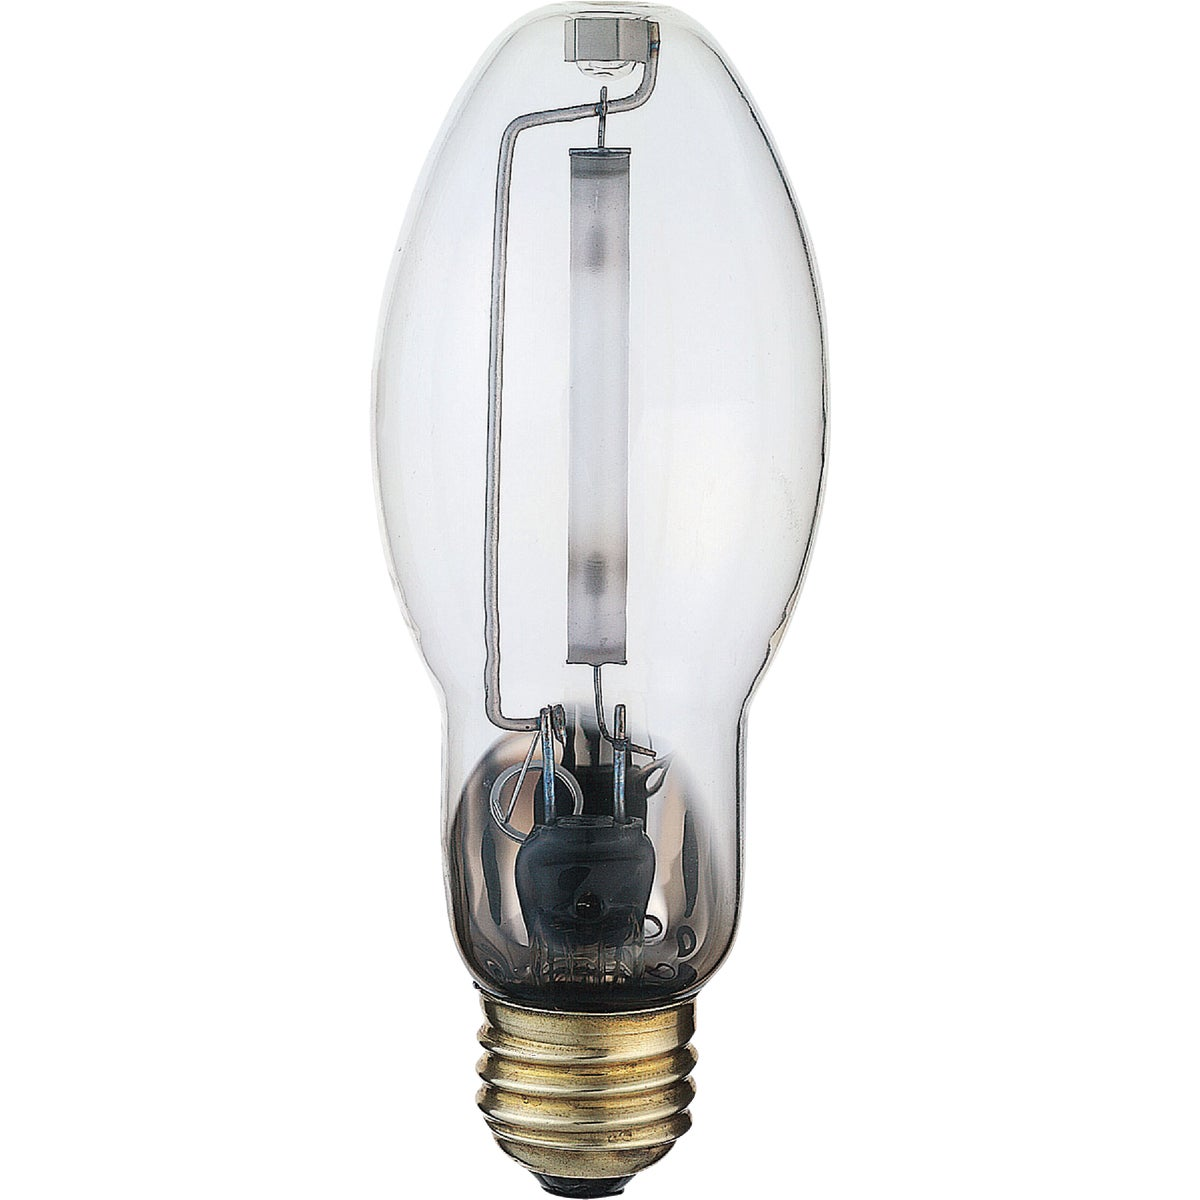 100W MG BASE SODIUM BULB - 26427 by G E Lighting Incom